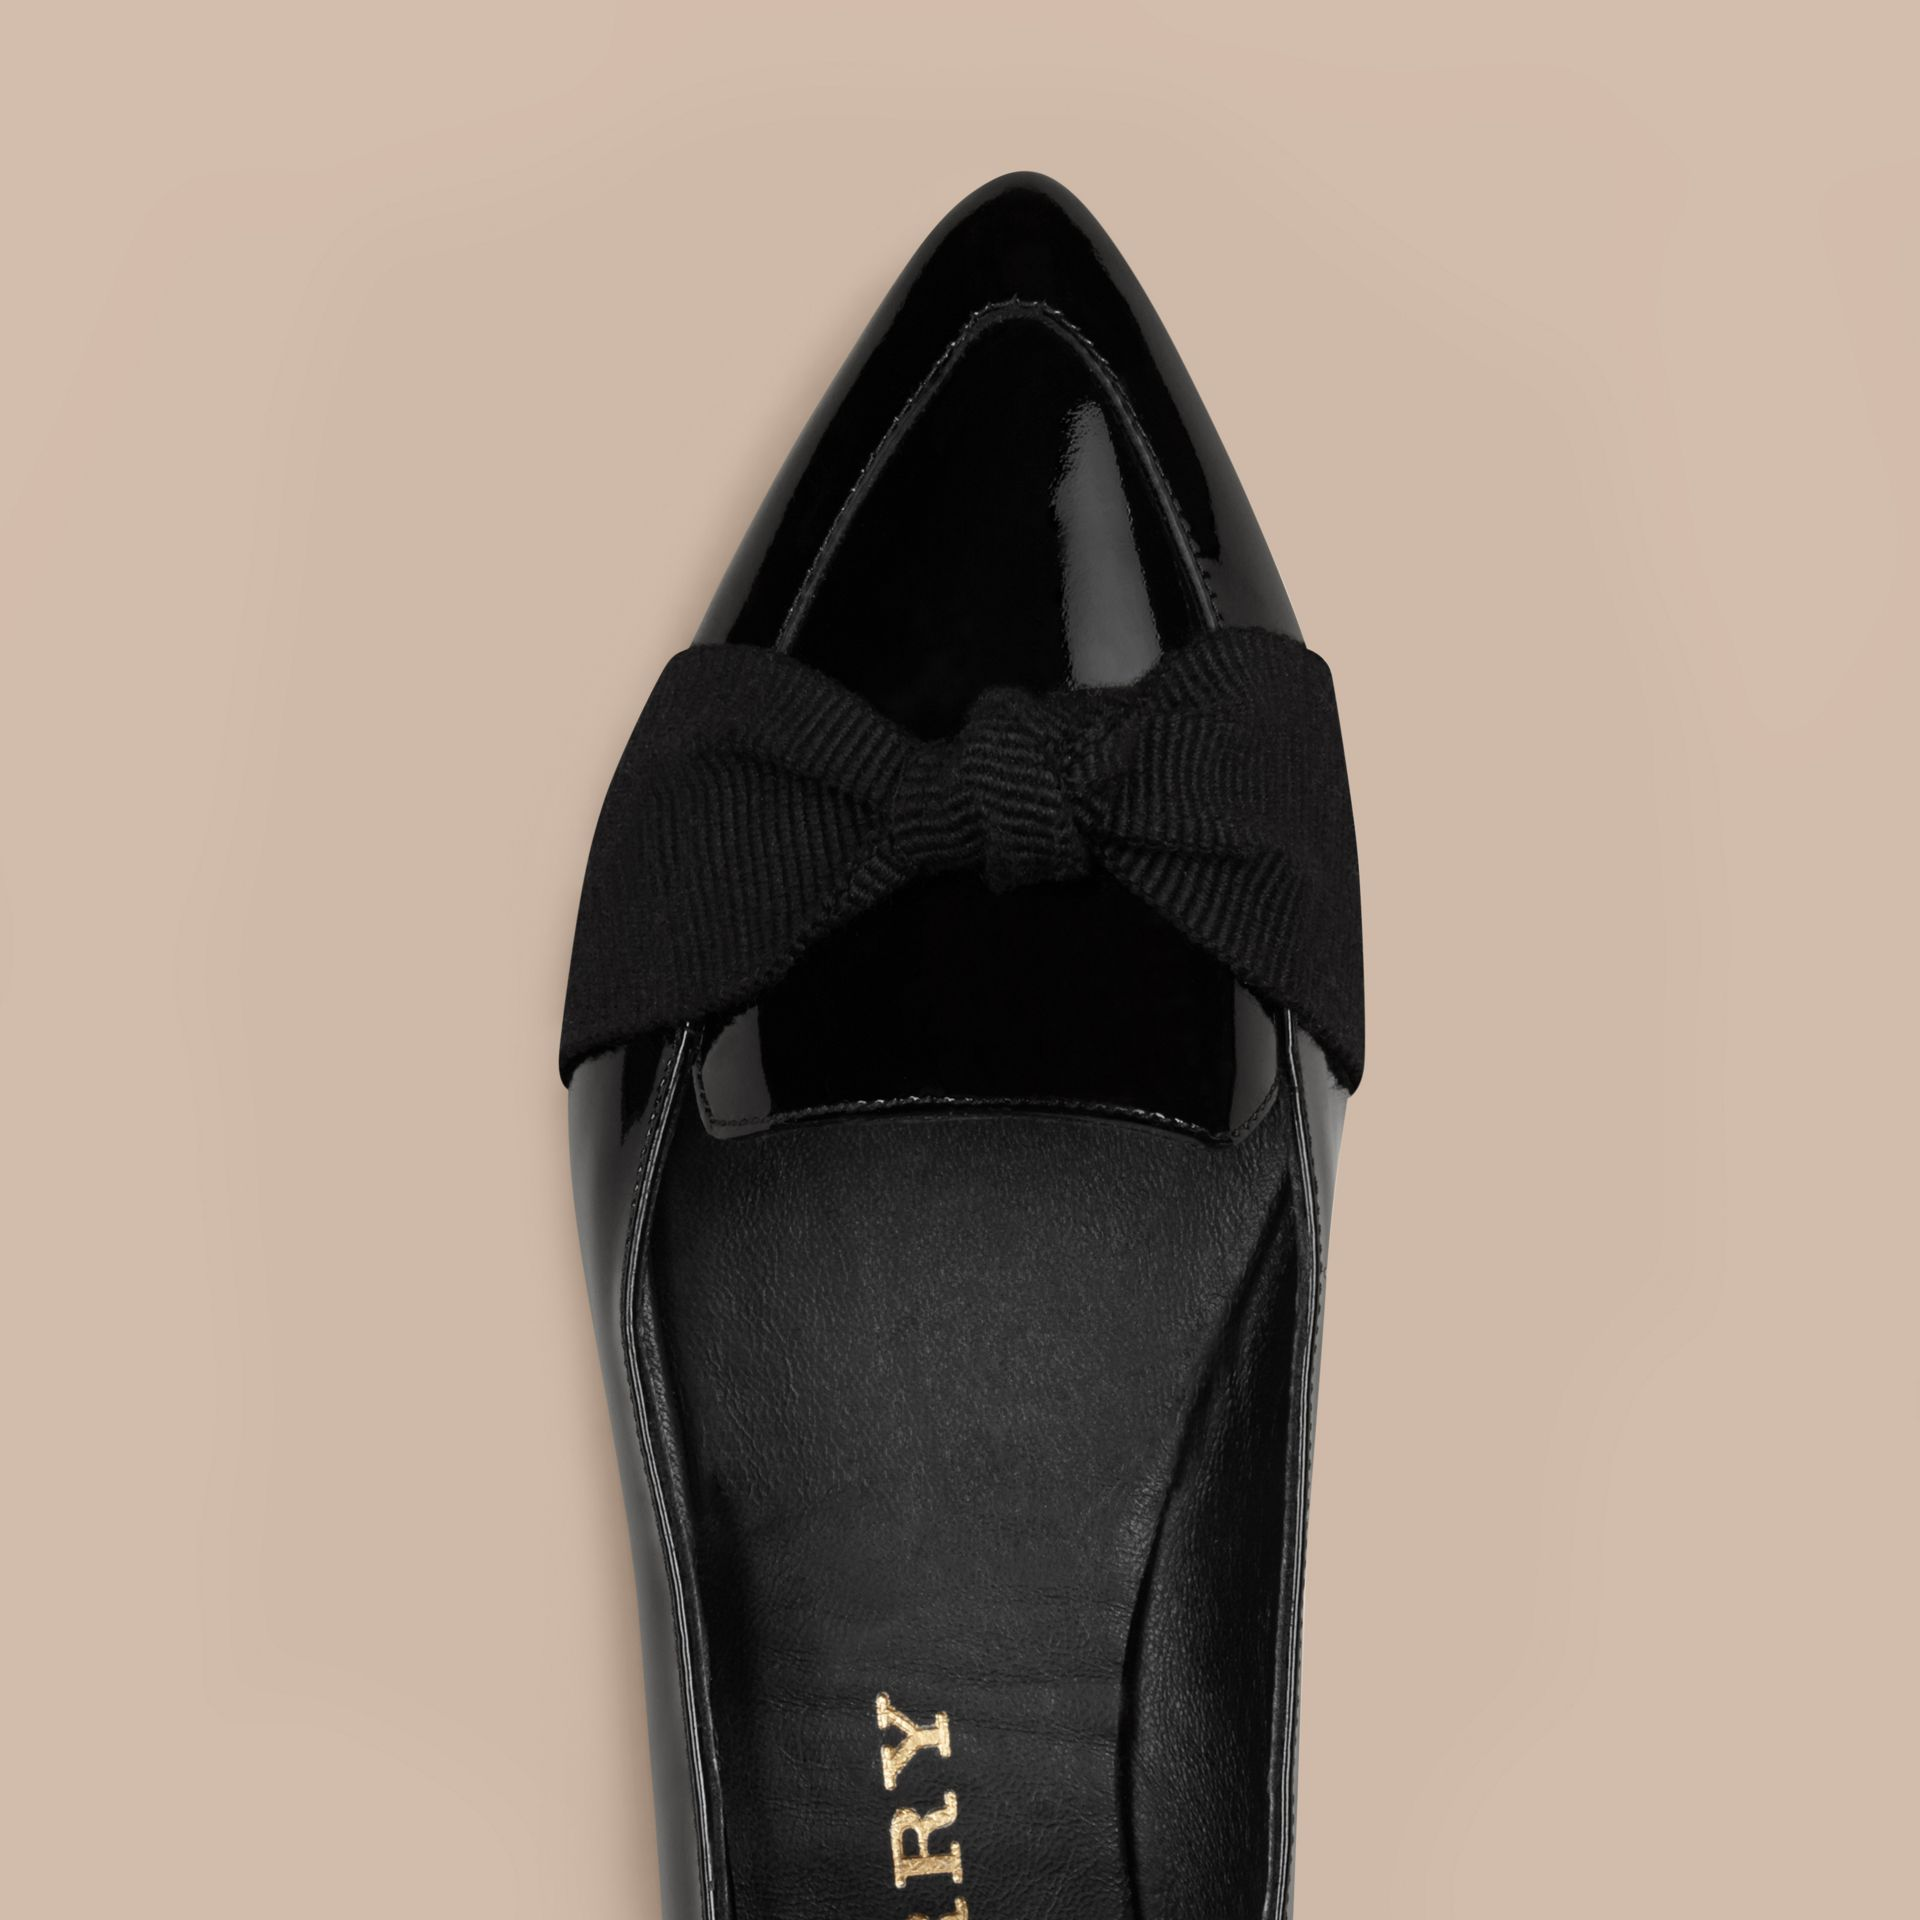 Grosgrain Bow Patent Leather Loafers in Black - Women | Burberry - gallery image 5